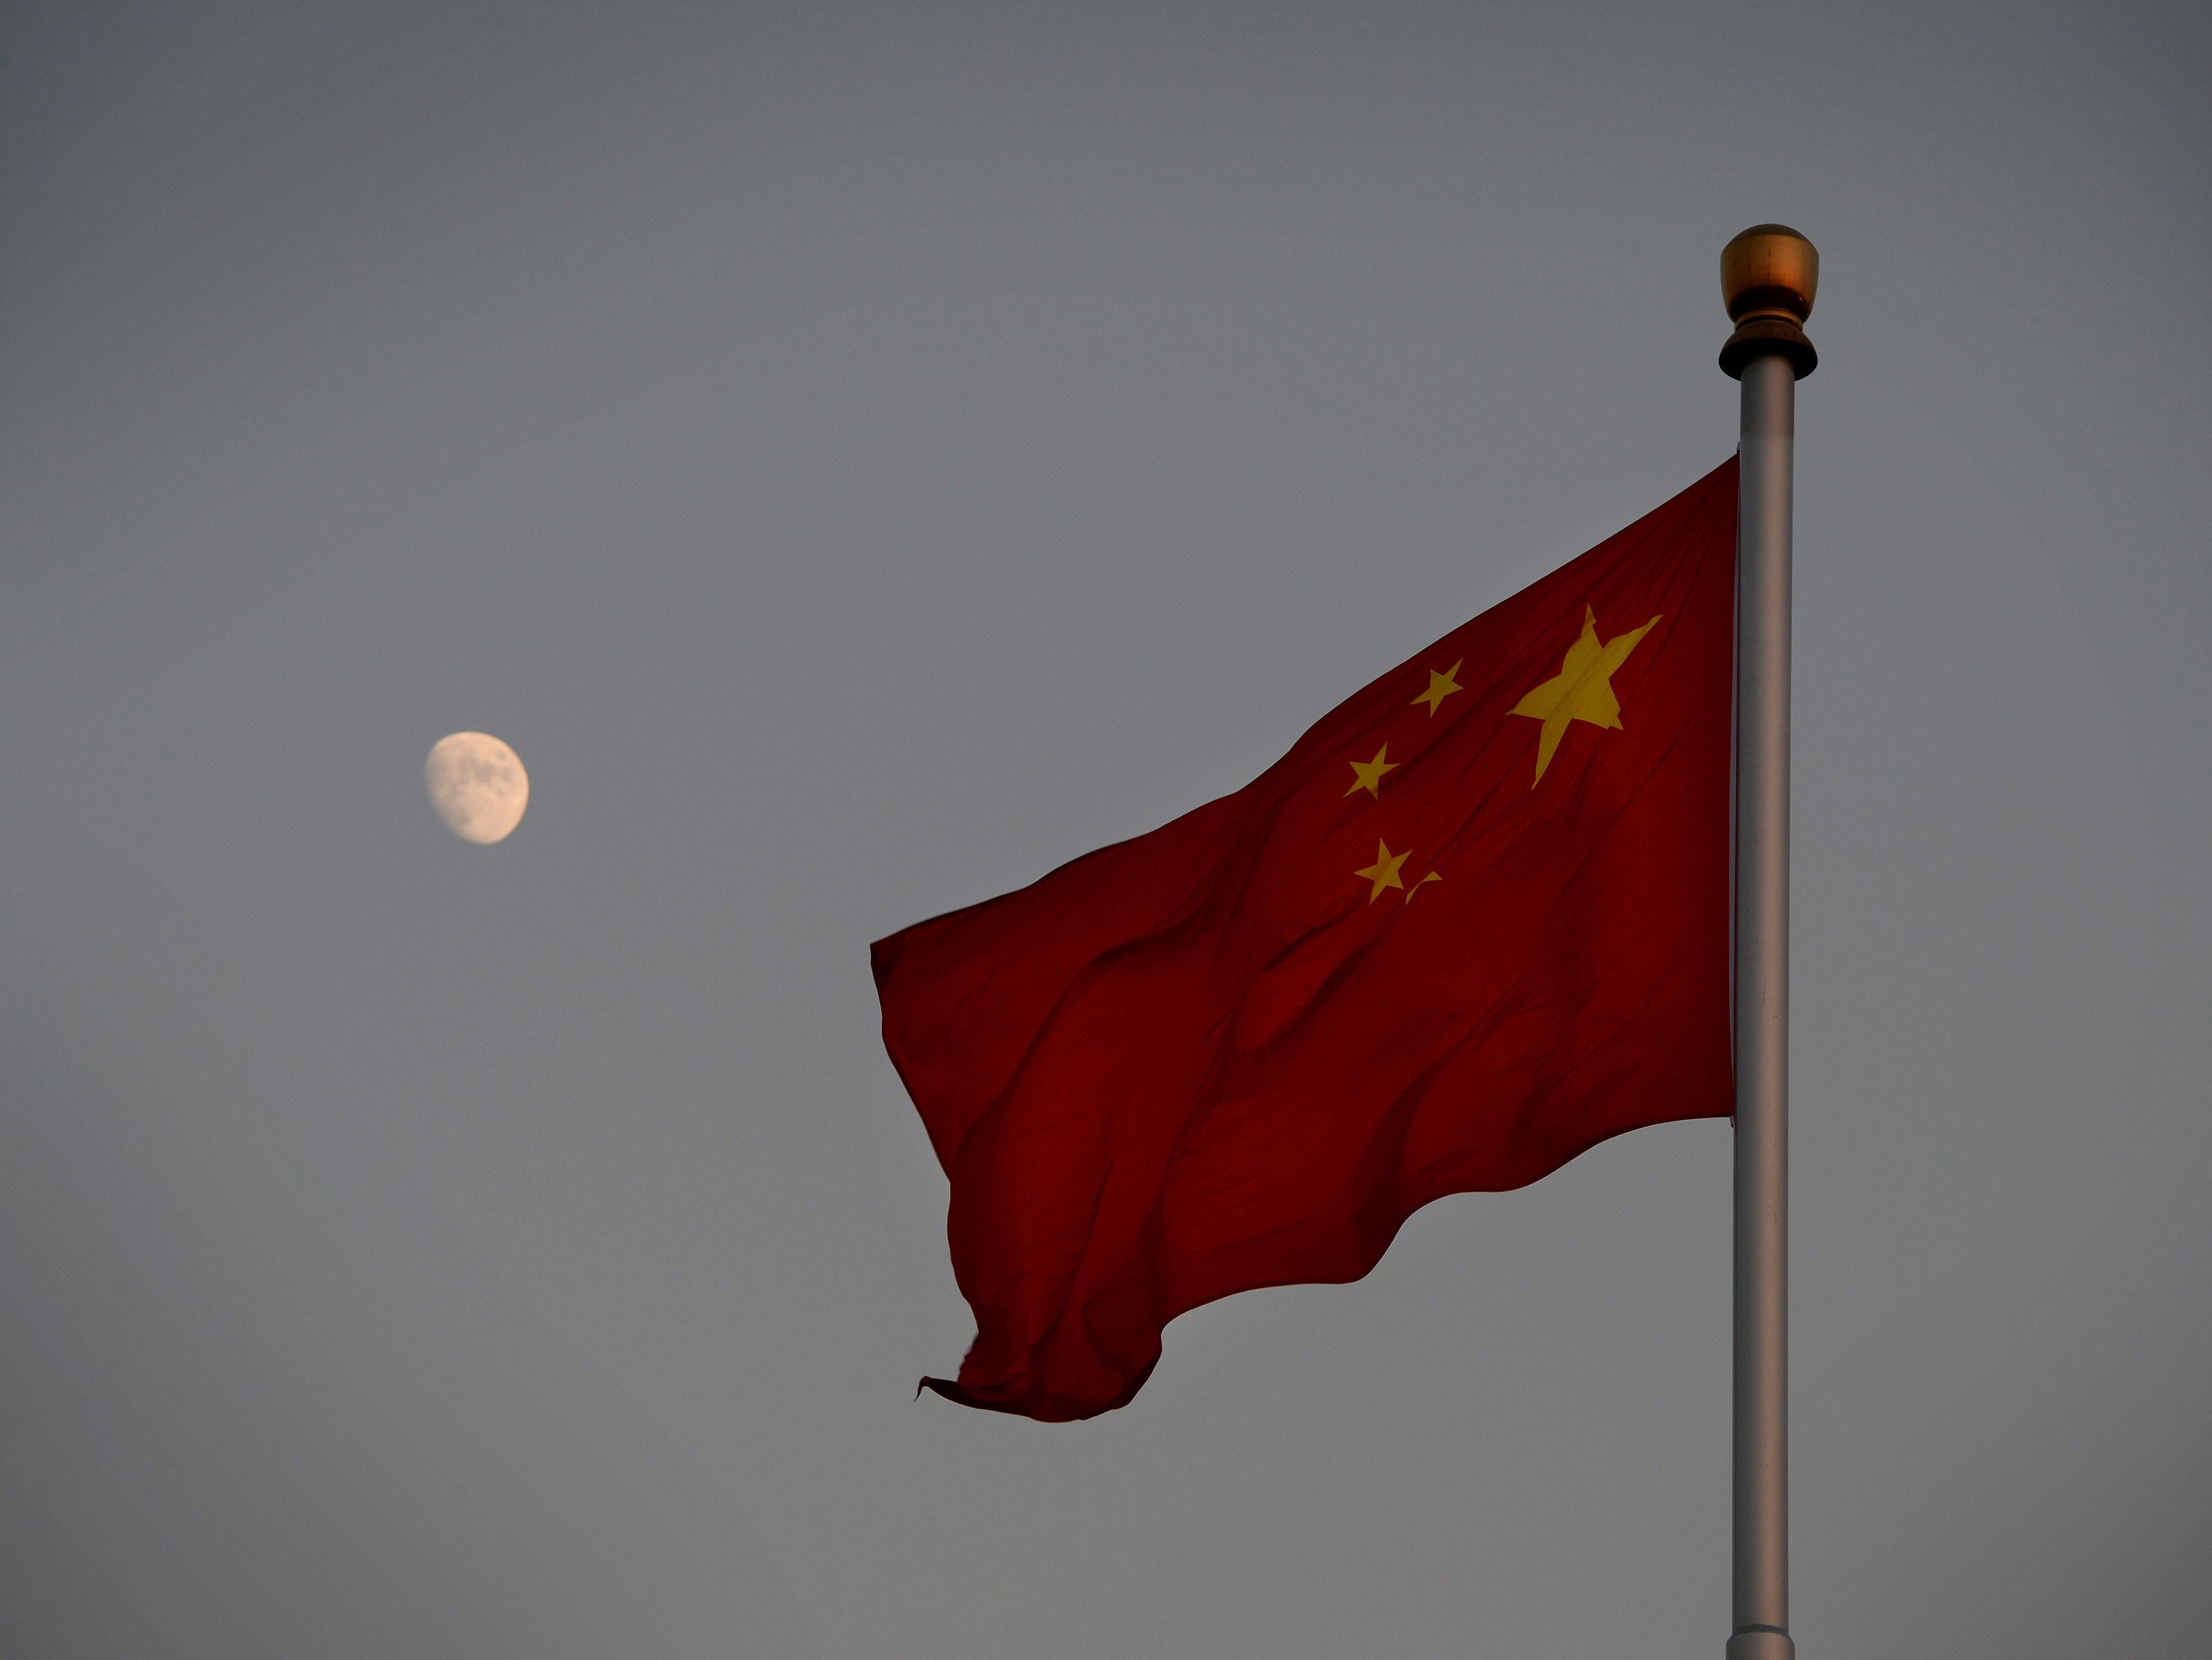 Image of the China national flash with the moon in the background.